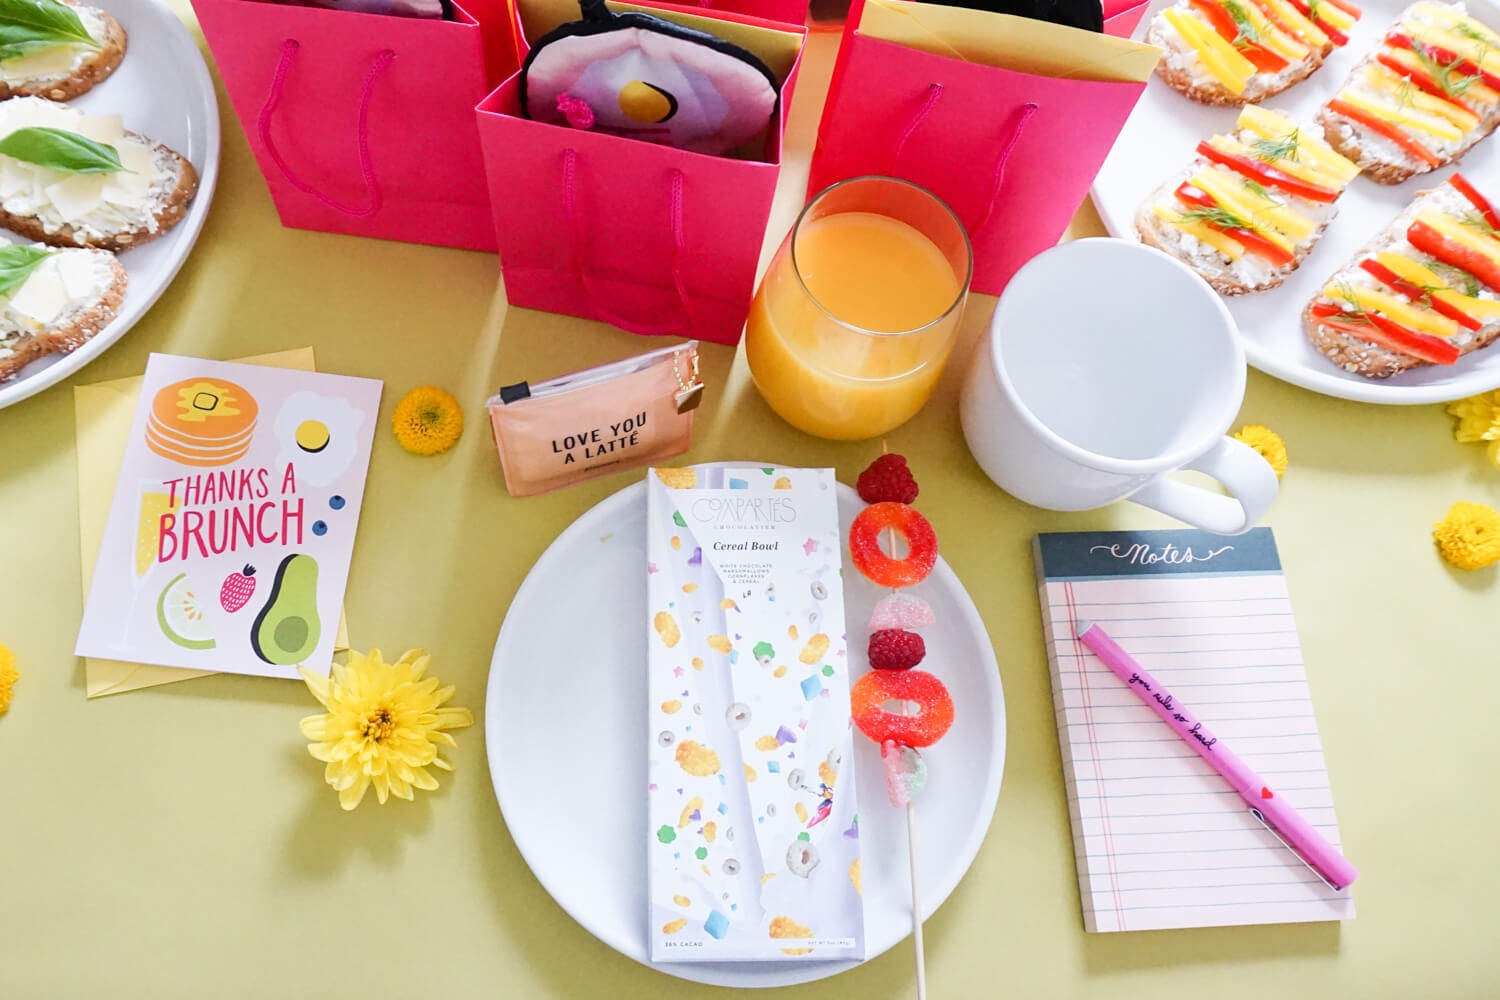 The PERFECT table setting for a bright and cheery New Year's Brunch!